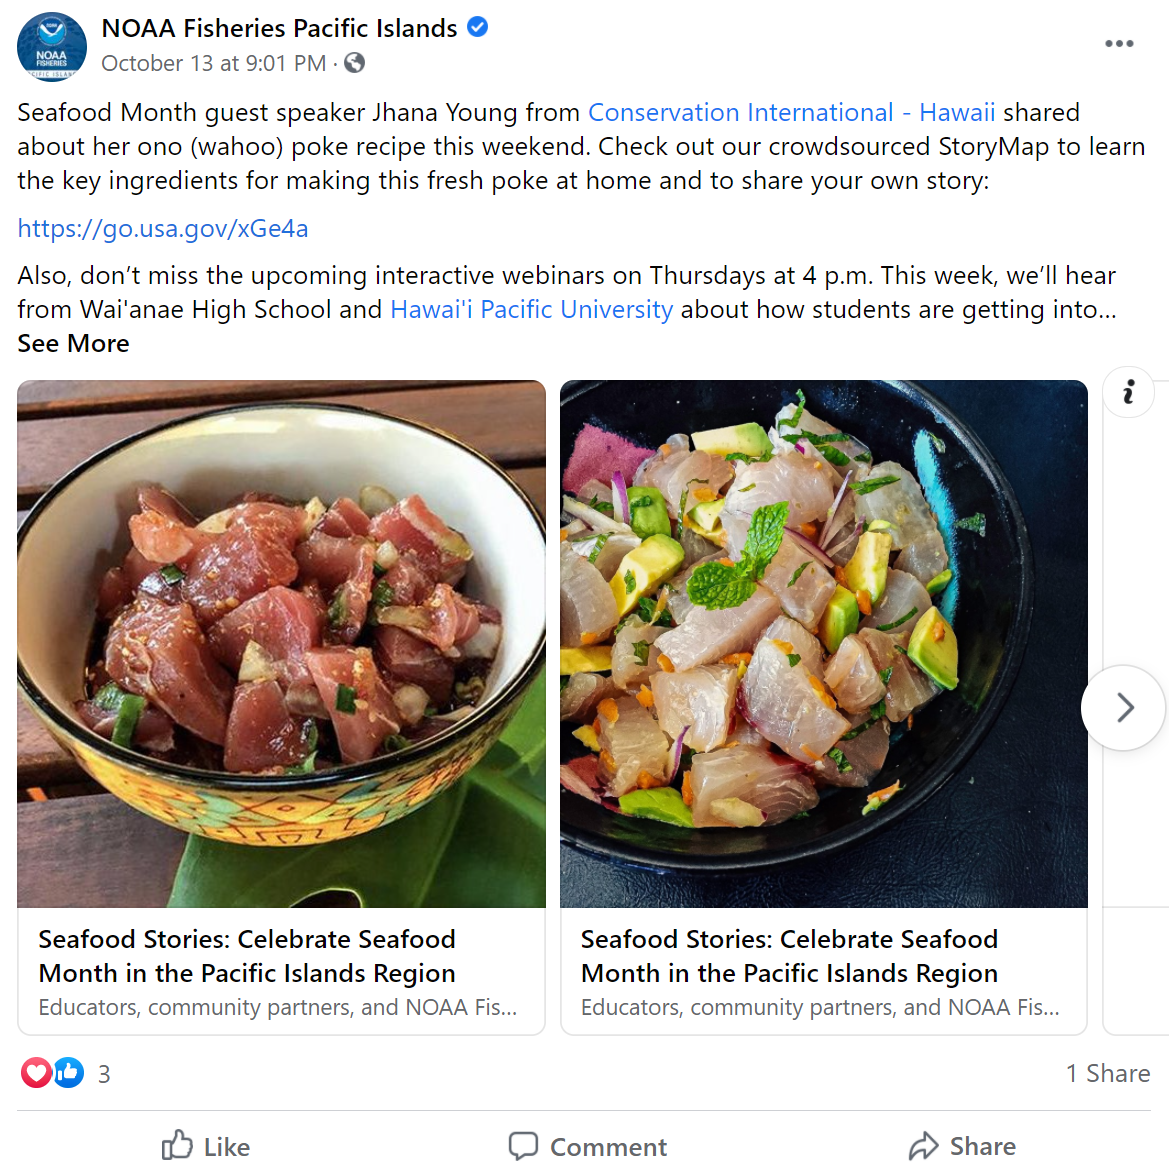 Facebook post from the Pacific Island region with information about a wahoo poke recipe